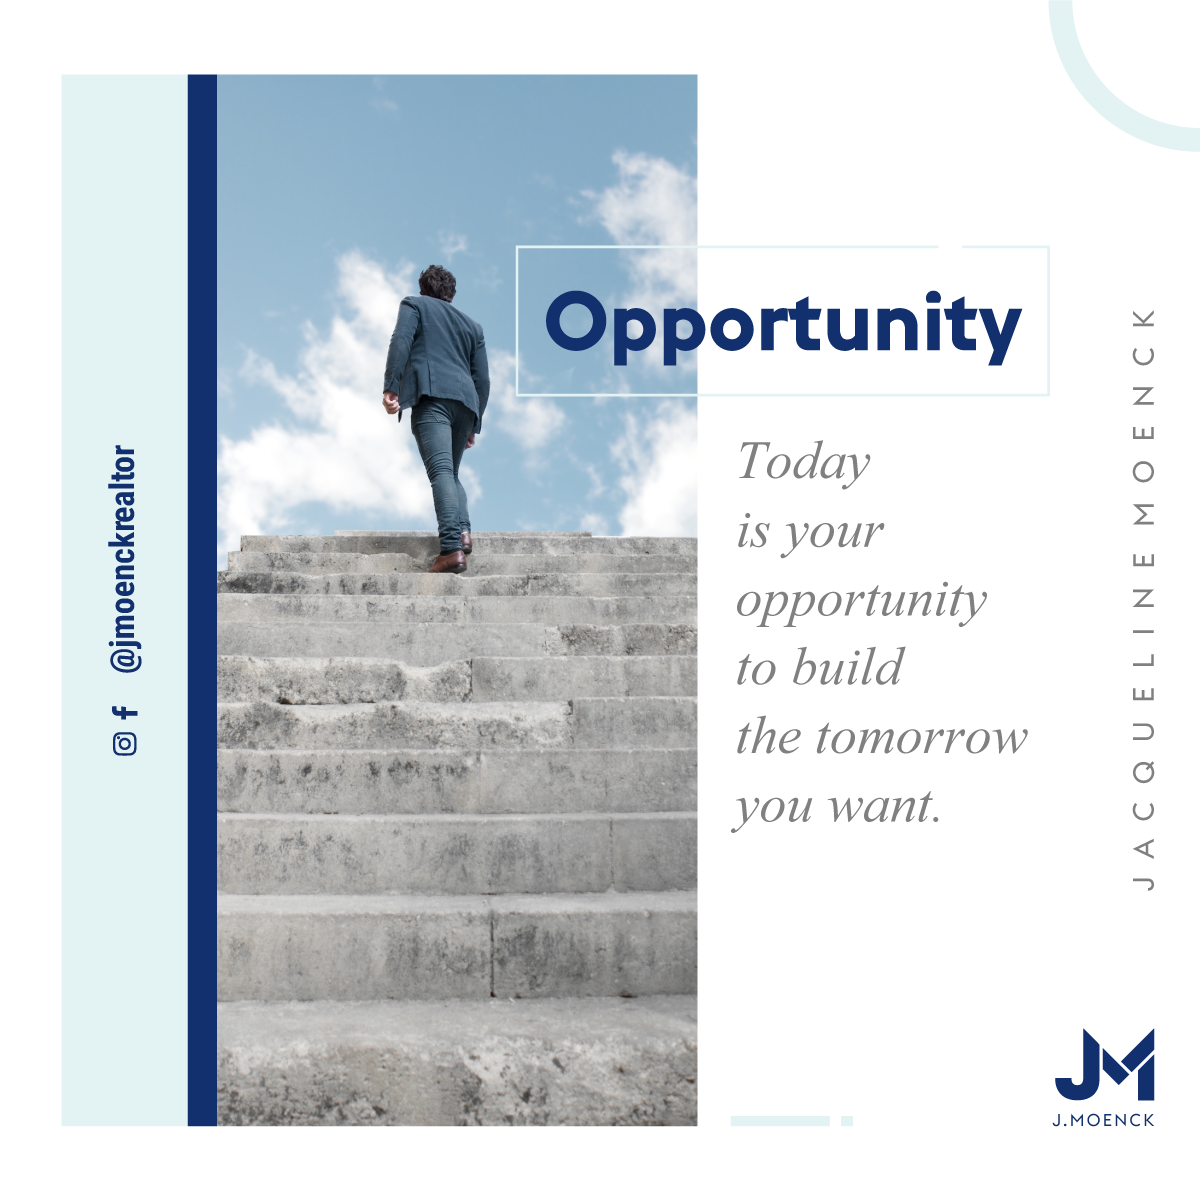 Today is your opportunity to build the tomorrow you want.  #miamifl #southflorida #coralgables #brickell #miamilakes #realestate #realestateagent #realestatesales #realestatemiami #realestatebroker #realestateagents #casasenventa #luxuryhomes #casasdelujo #downtownmiami #miamirealestate #miamirealtor #miamirealtors #miamirealestateagent #homebuying  @jmoenckrealtor @realestateempiregroup